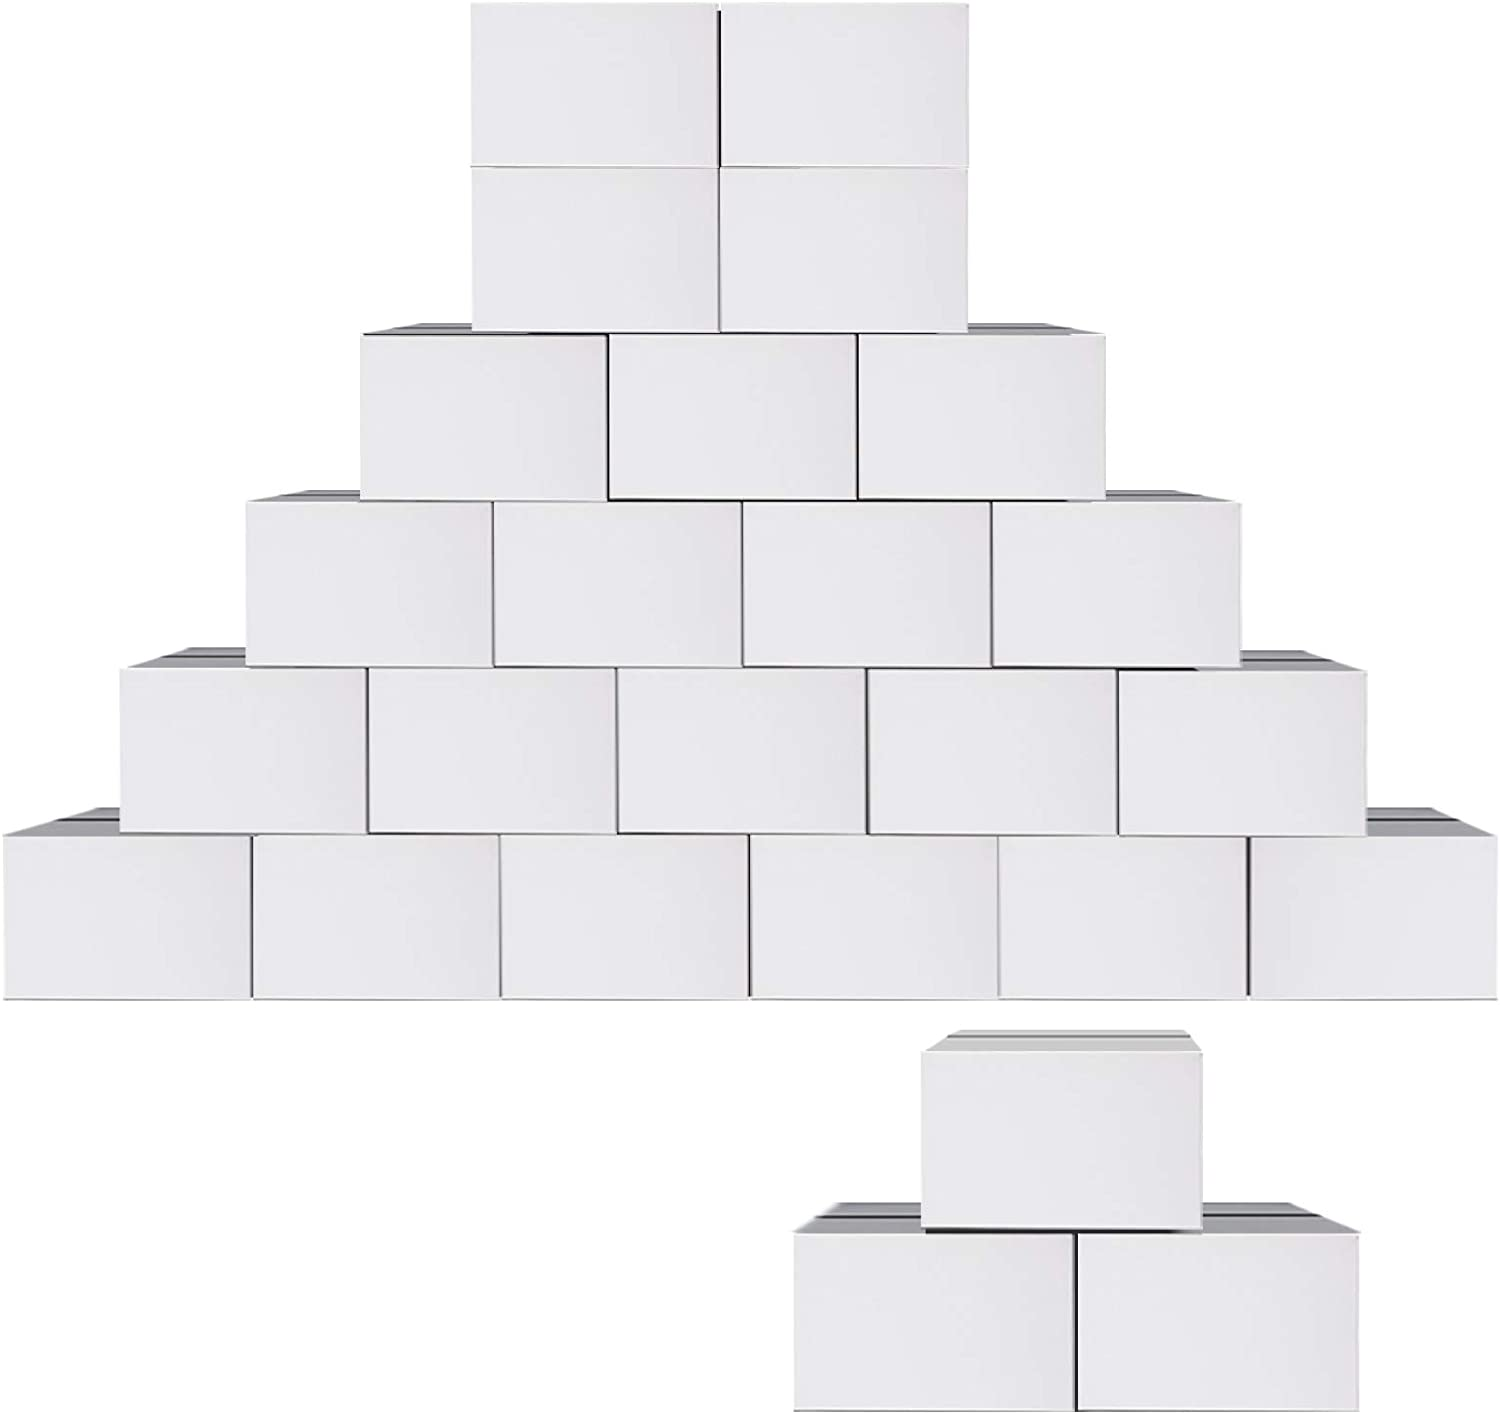 25 Pack 11x6x6 Cardboard Boxes, White Corrugated Shipping Box for Mailing